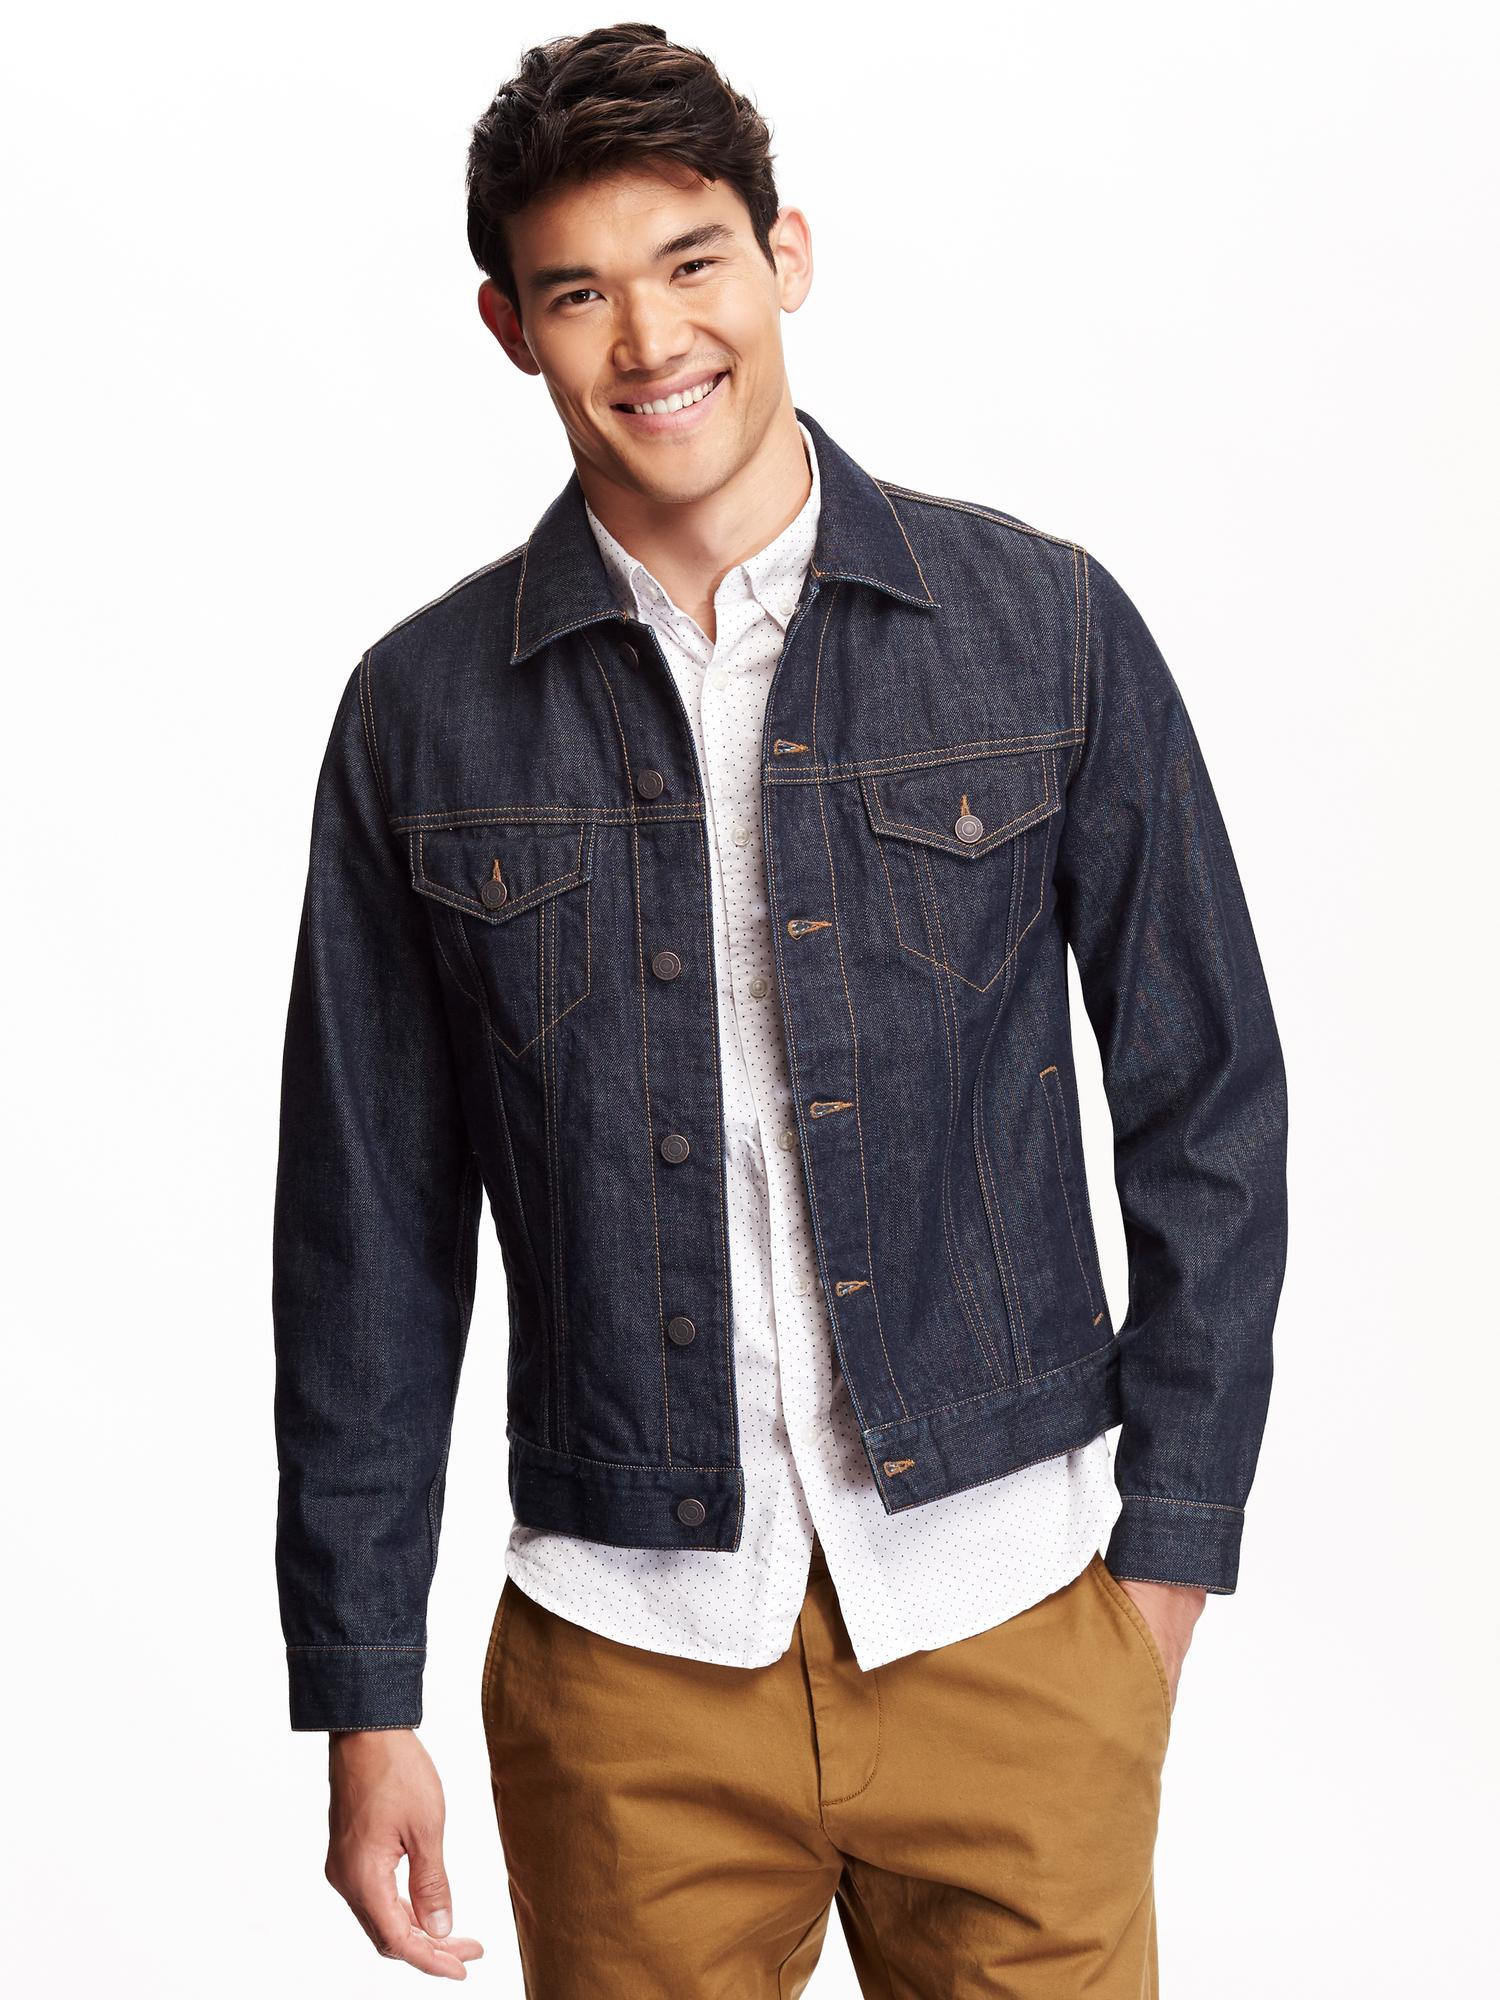 Denim Jacket for Men | Old Navy